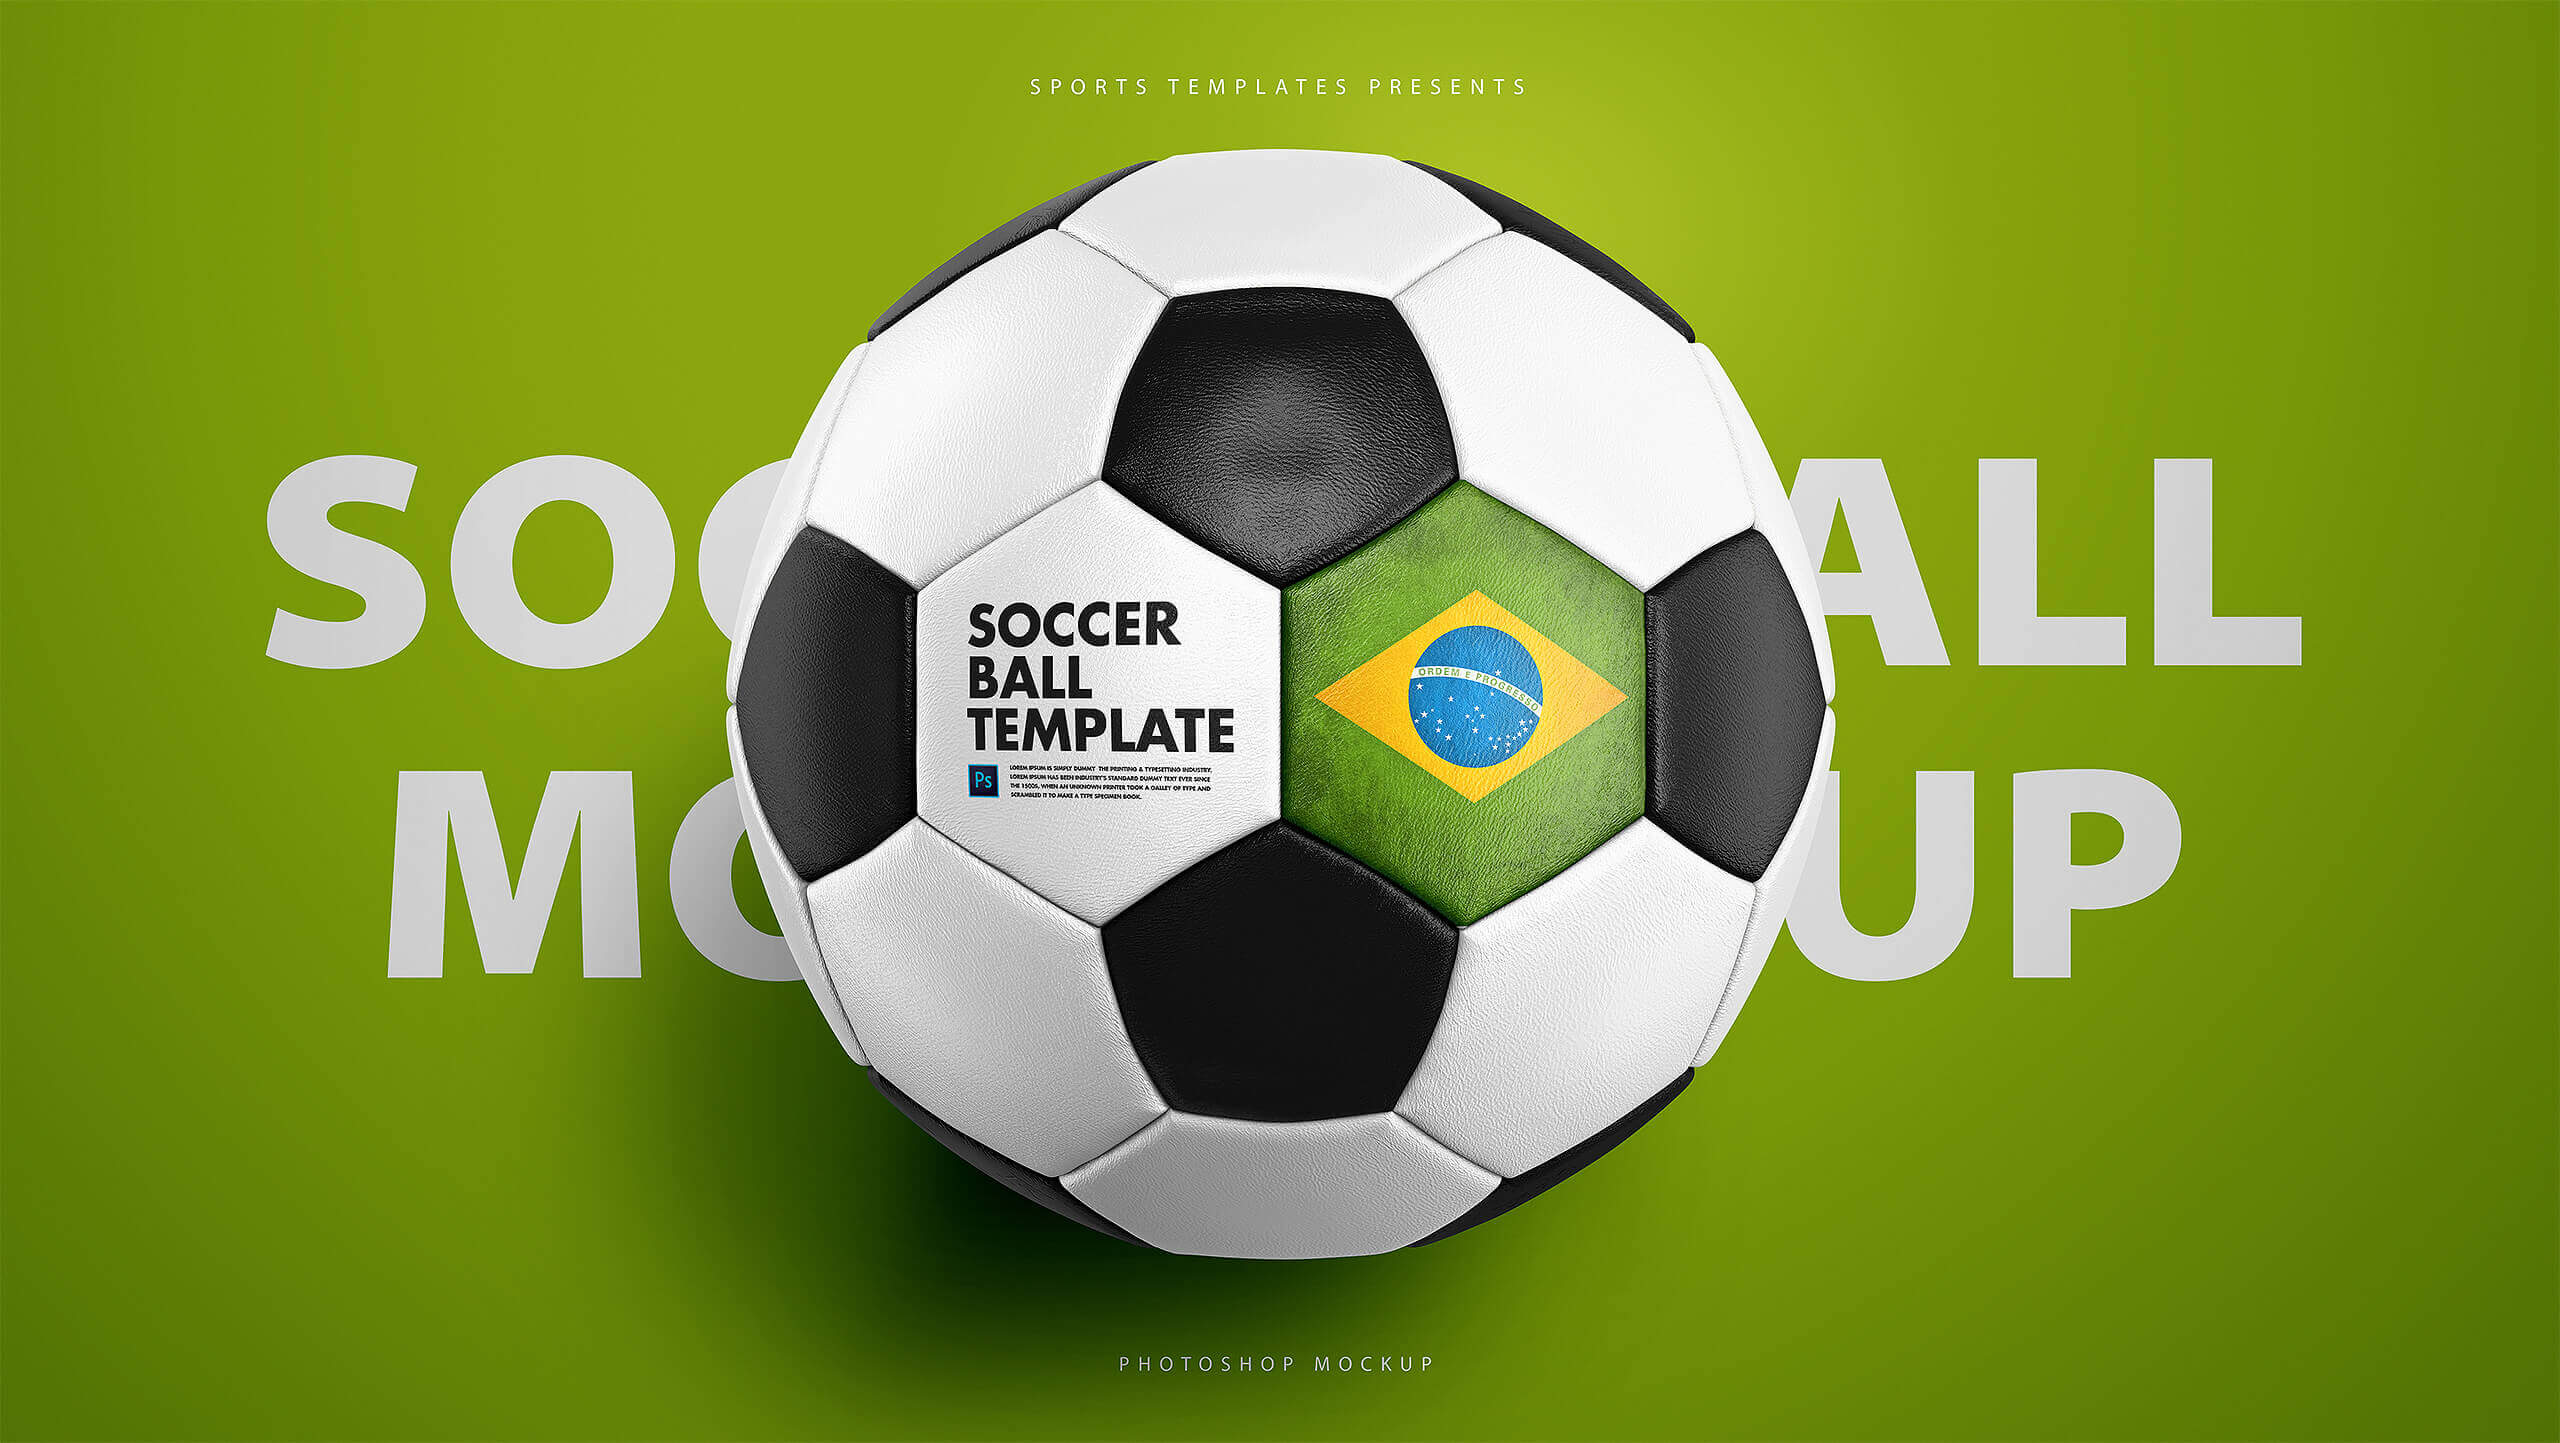 Soccer Football Ball Photoshop Template Sports Templates